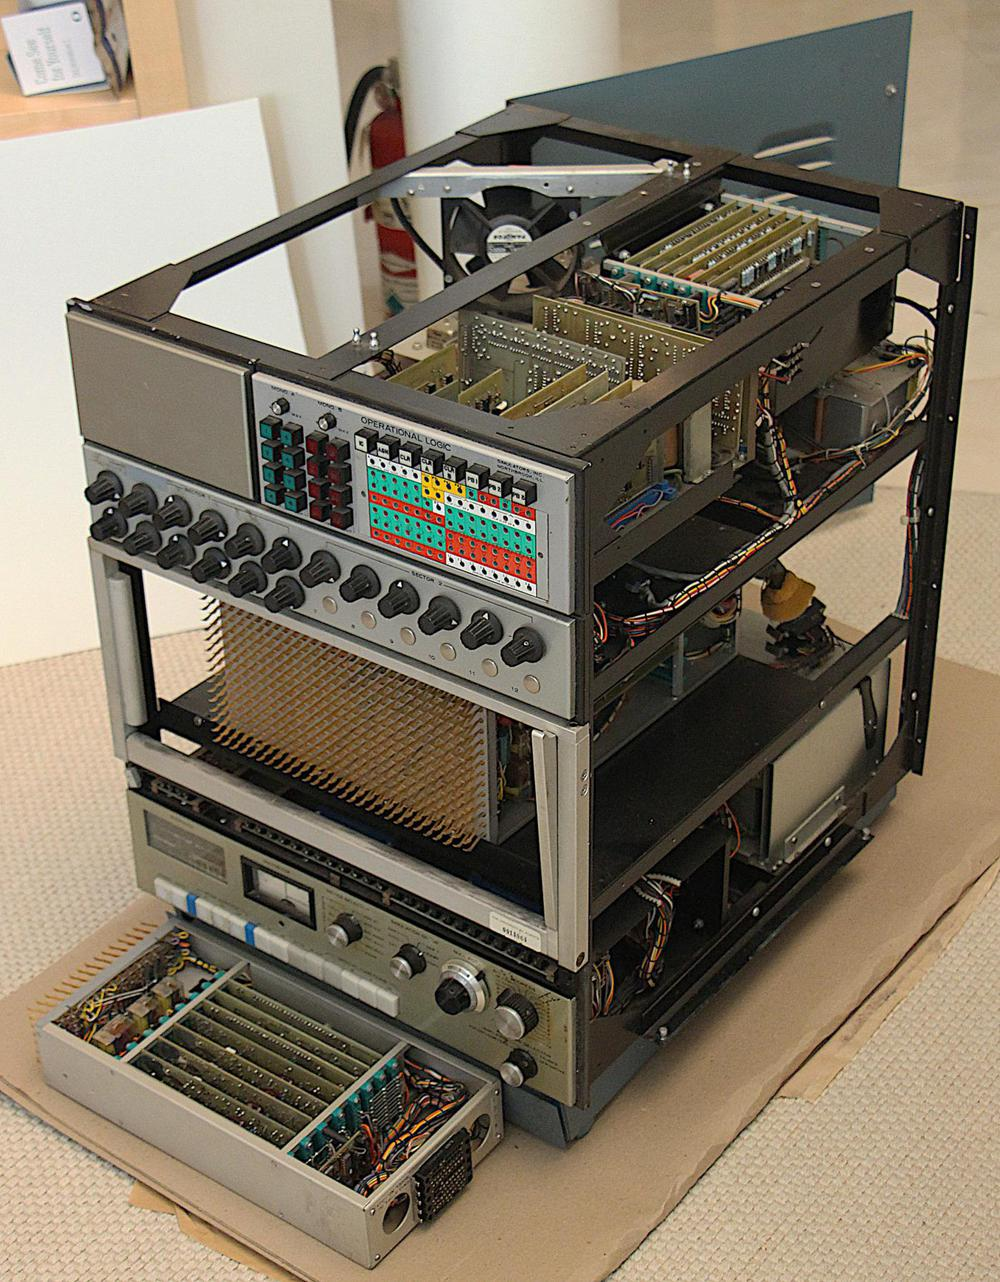 The analog computer with the sides removed to show the internal circuitry. One module has been removed and placed in front of the computer.